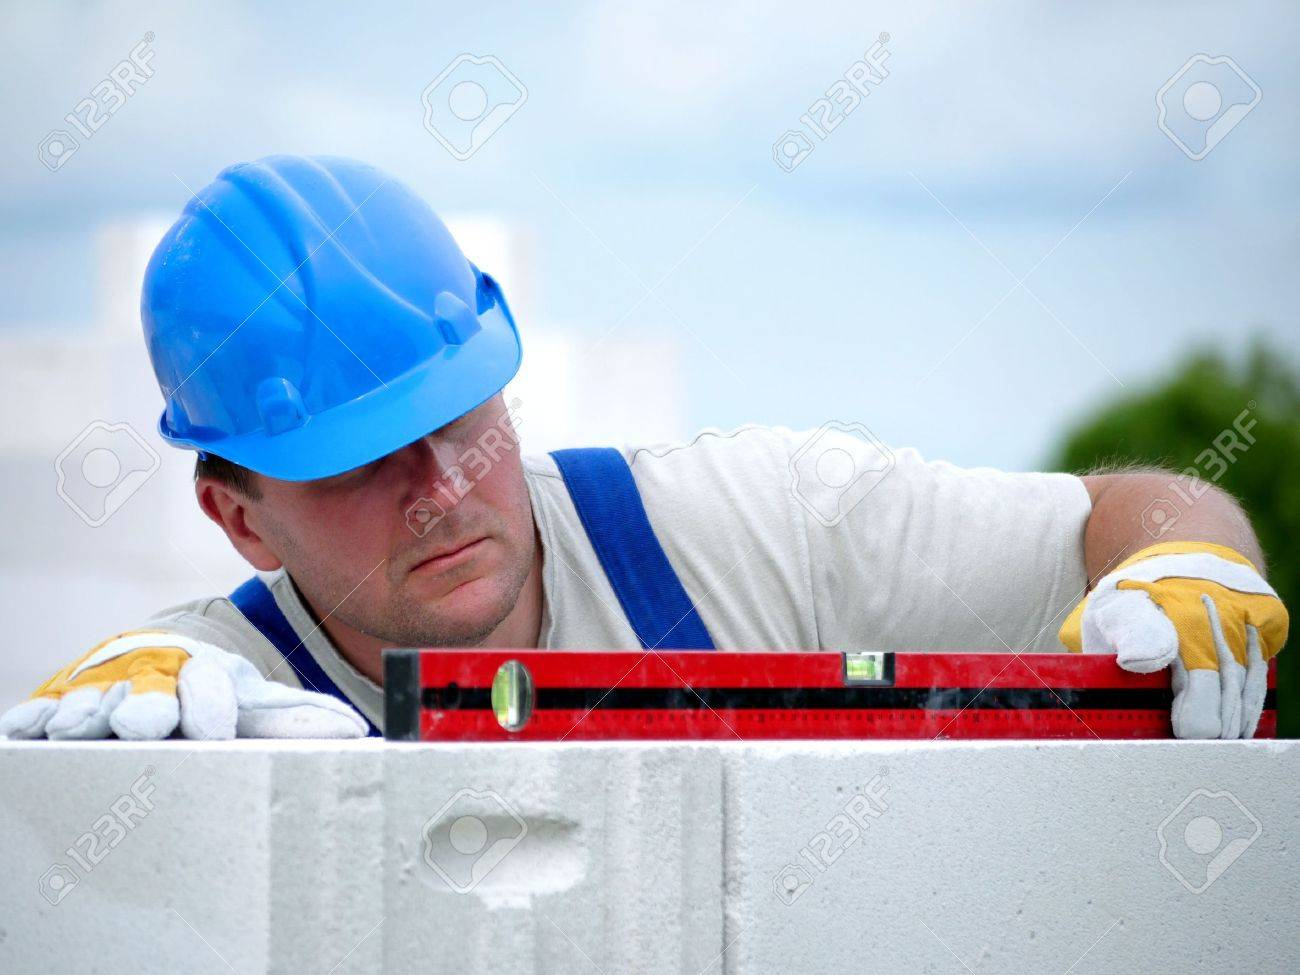 Mason checking horizontal level of house wall  layer being made from aerated autoclaved concrete blocks Stock Photo - 5026053